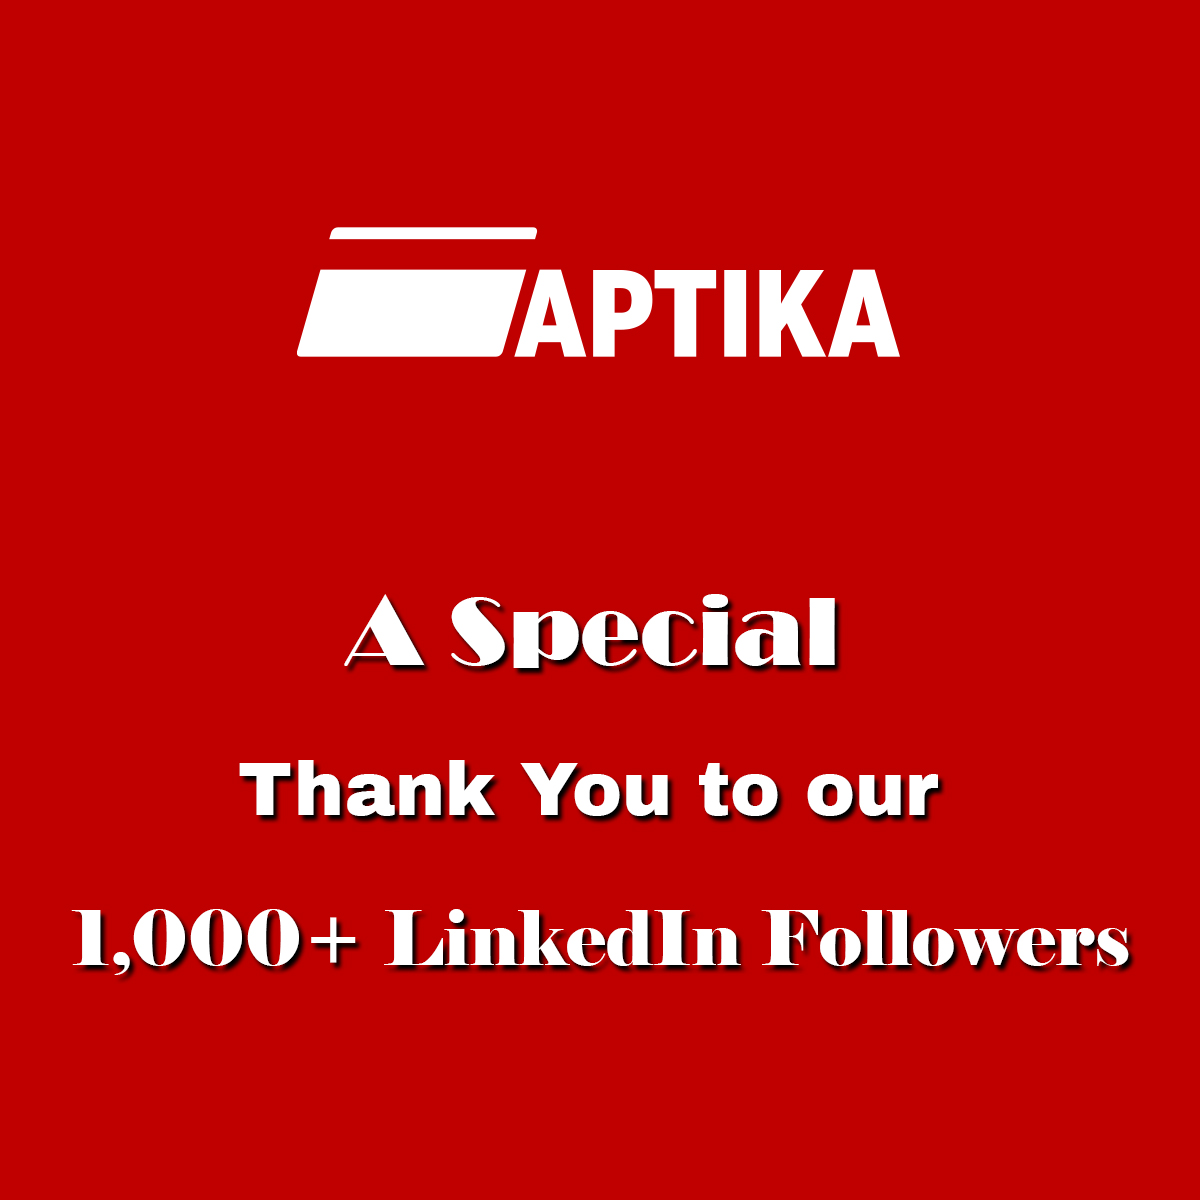 A Special Thank You to our 1,000+ LinkedIn Followers